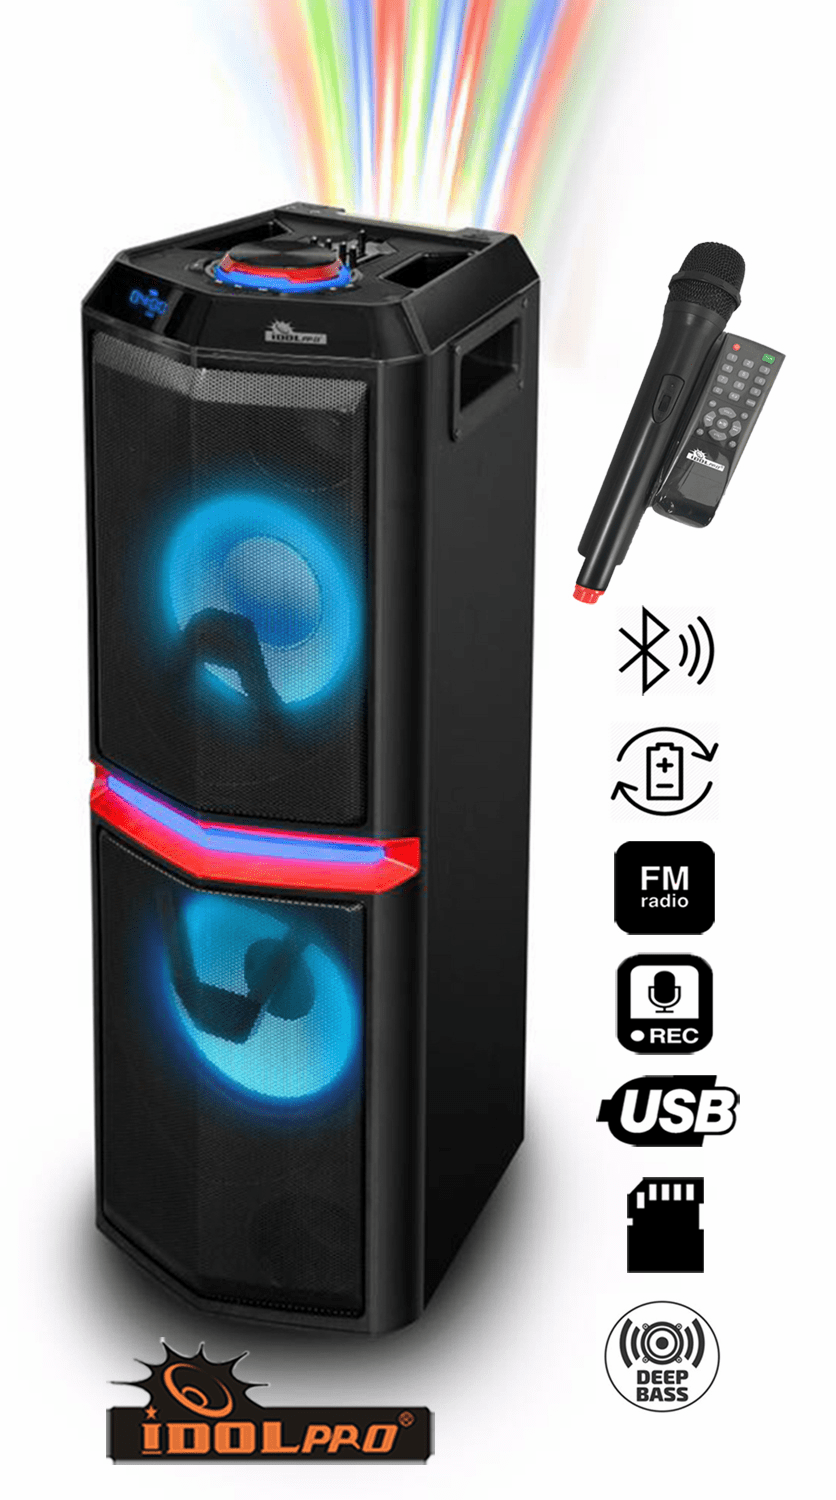 "IDOlpro IPS-DJ01 Wireless Compact Portable Powerful PA Karaoke System With Bluetooth, Wireless Microphone, Rechargeable Battery, USB & SD Readers, FM Radio, 3.5mm AUX Input and Multi Flashing LED Light <font color="" orange"">Discontinued </font>"